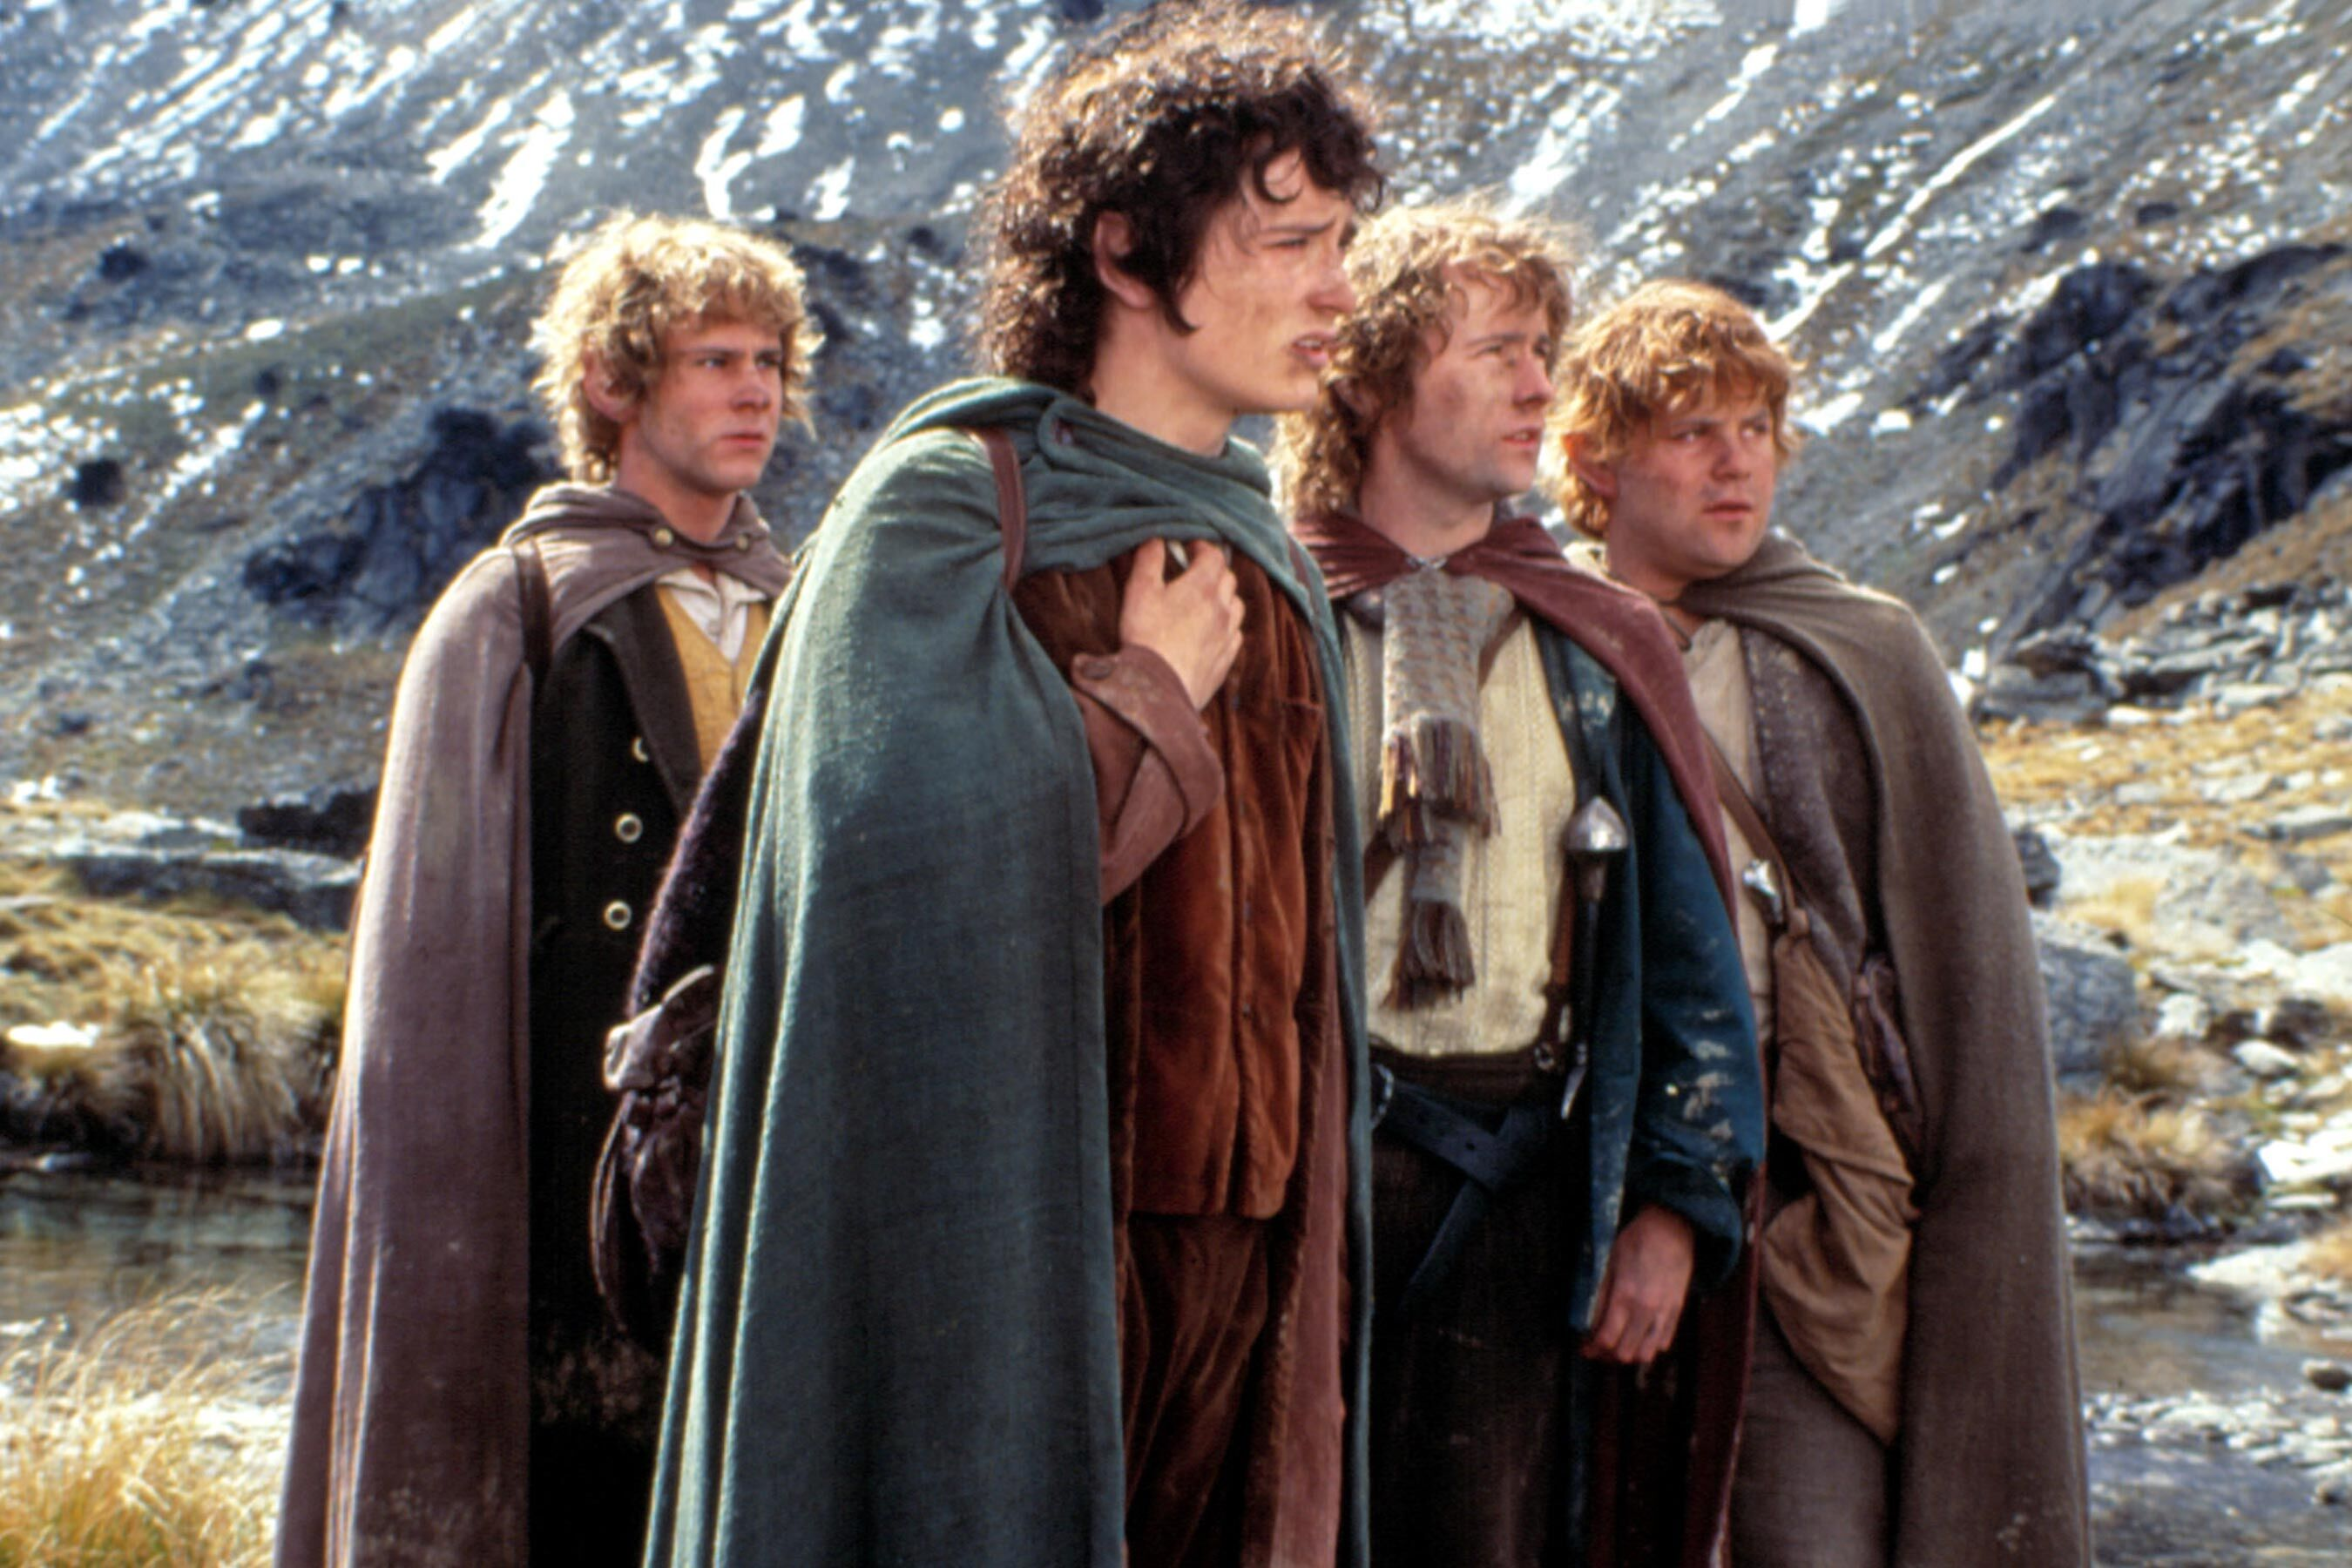 Meet the cast of Amazon's Lord of the Rings show